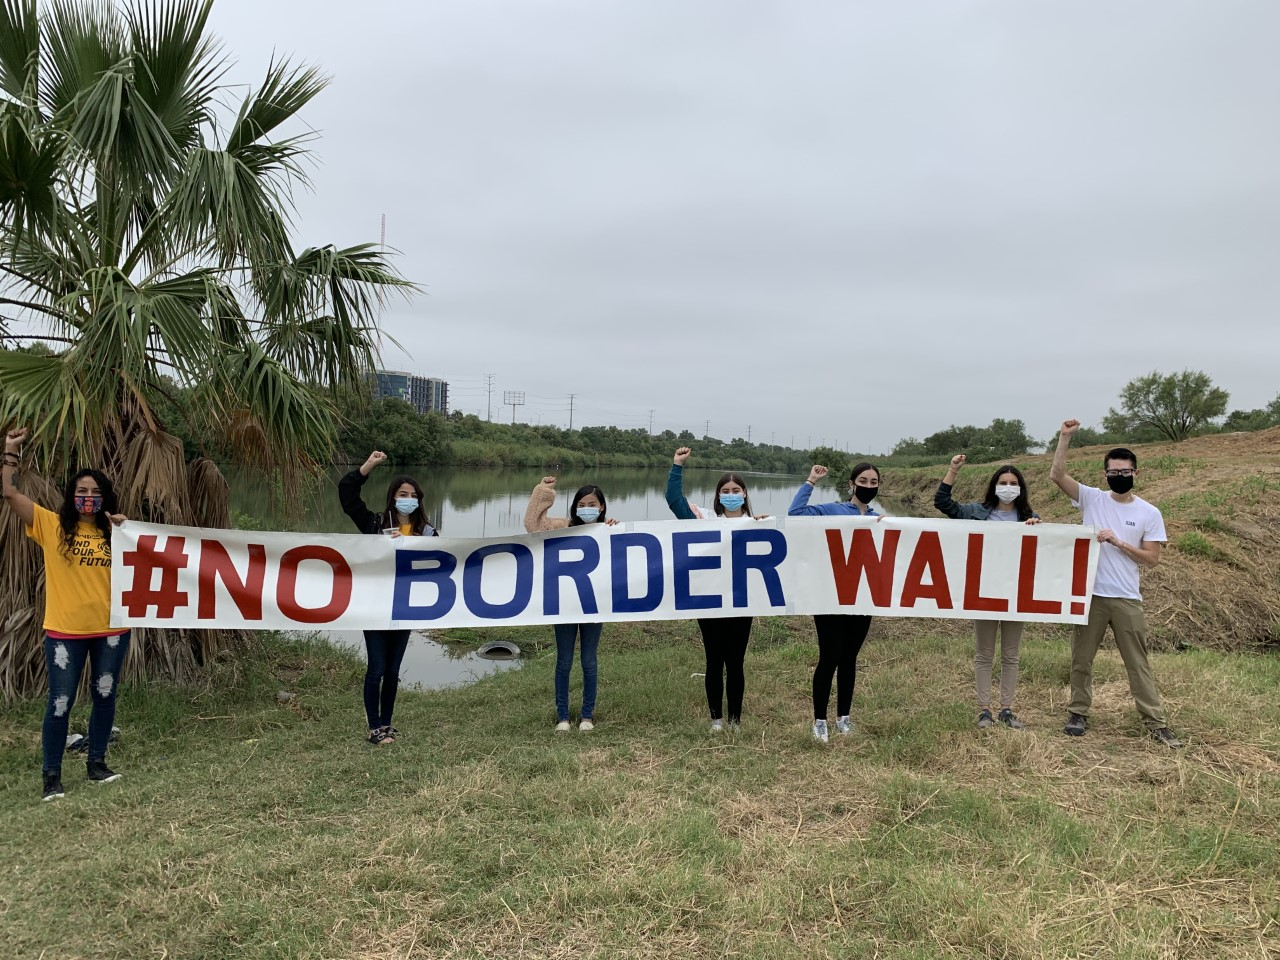 Laredoans express support and opposition to proposed border wall ahead of election